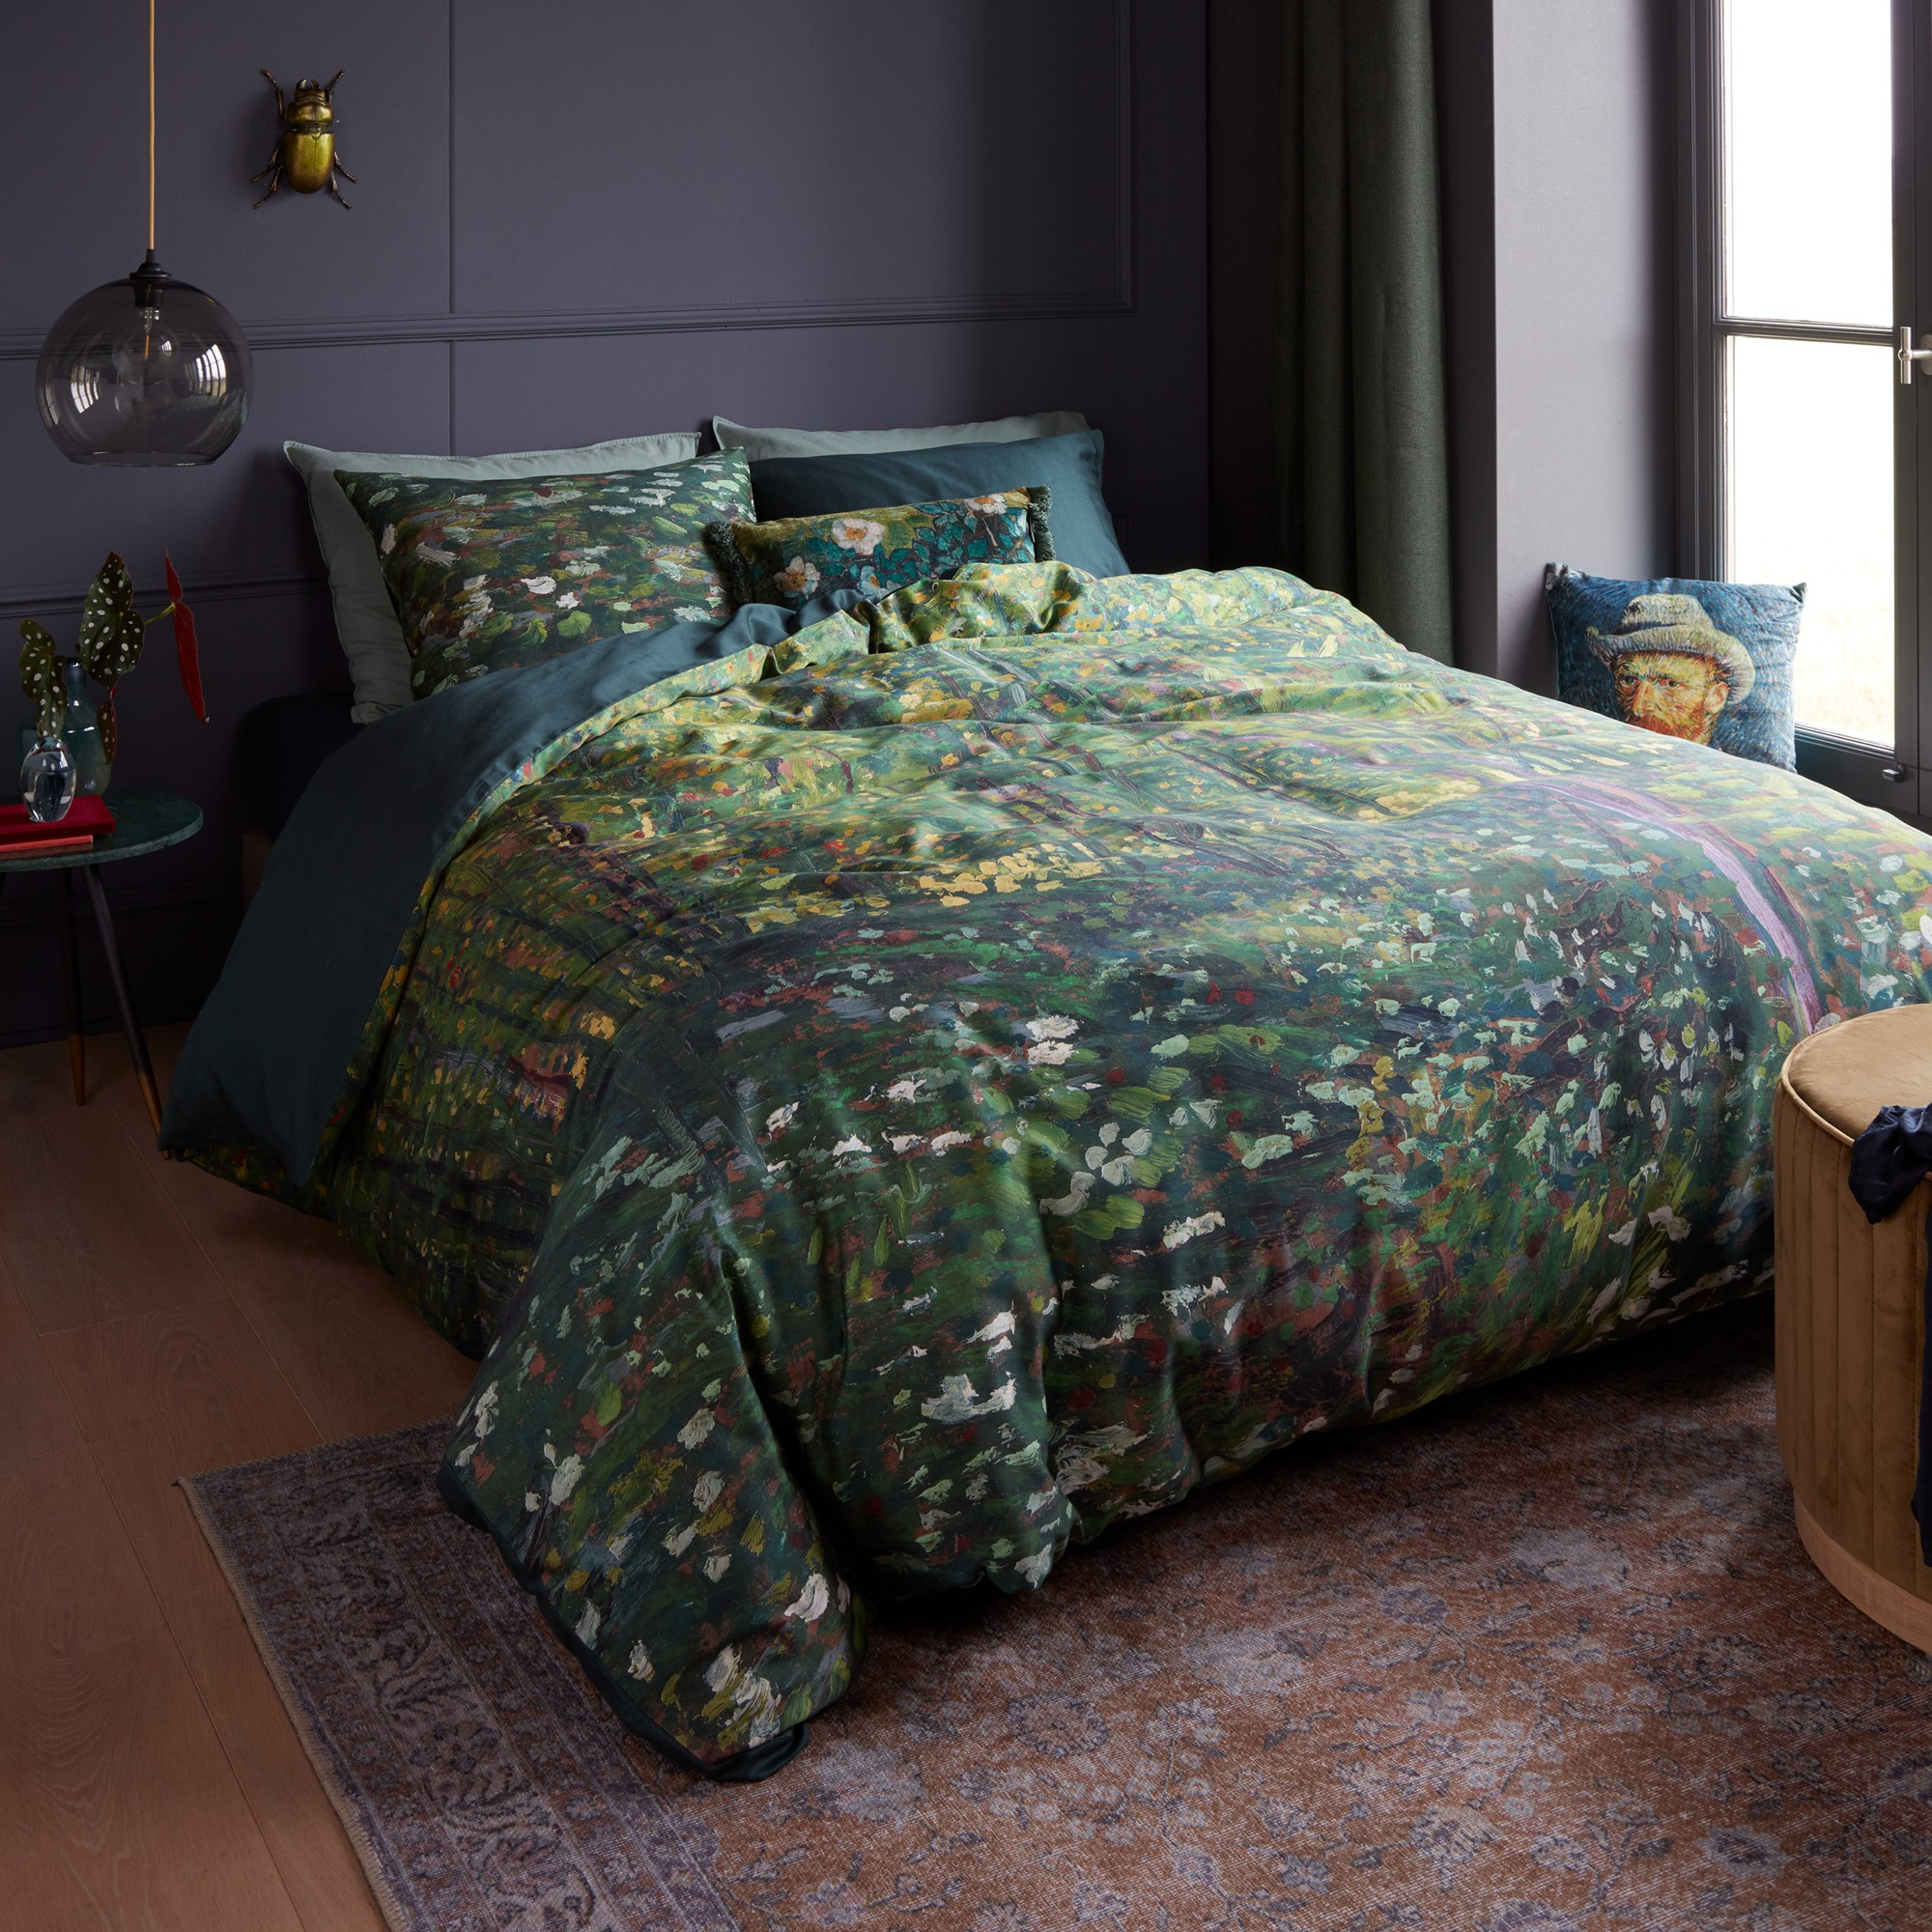 Beddinghouse Van Gogh Trees & Undergrowth Cotton Sateen Quilt Cover Set, King